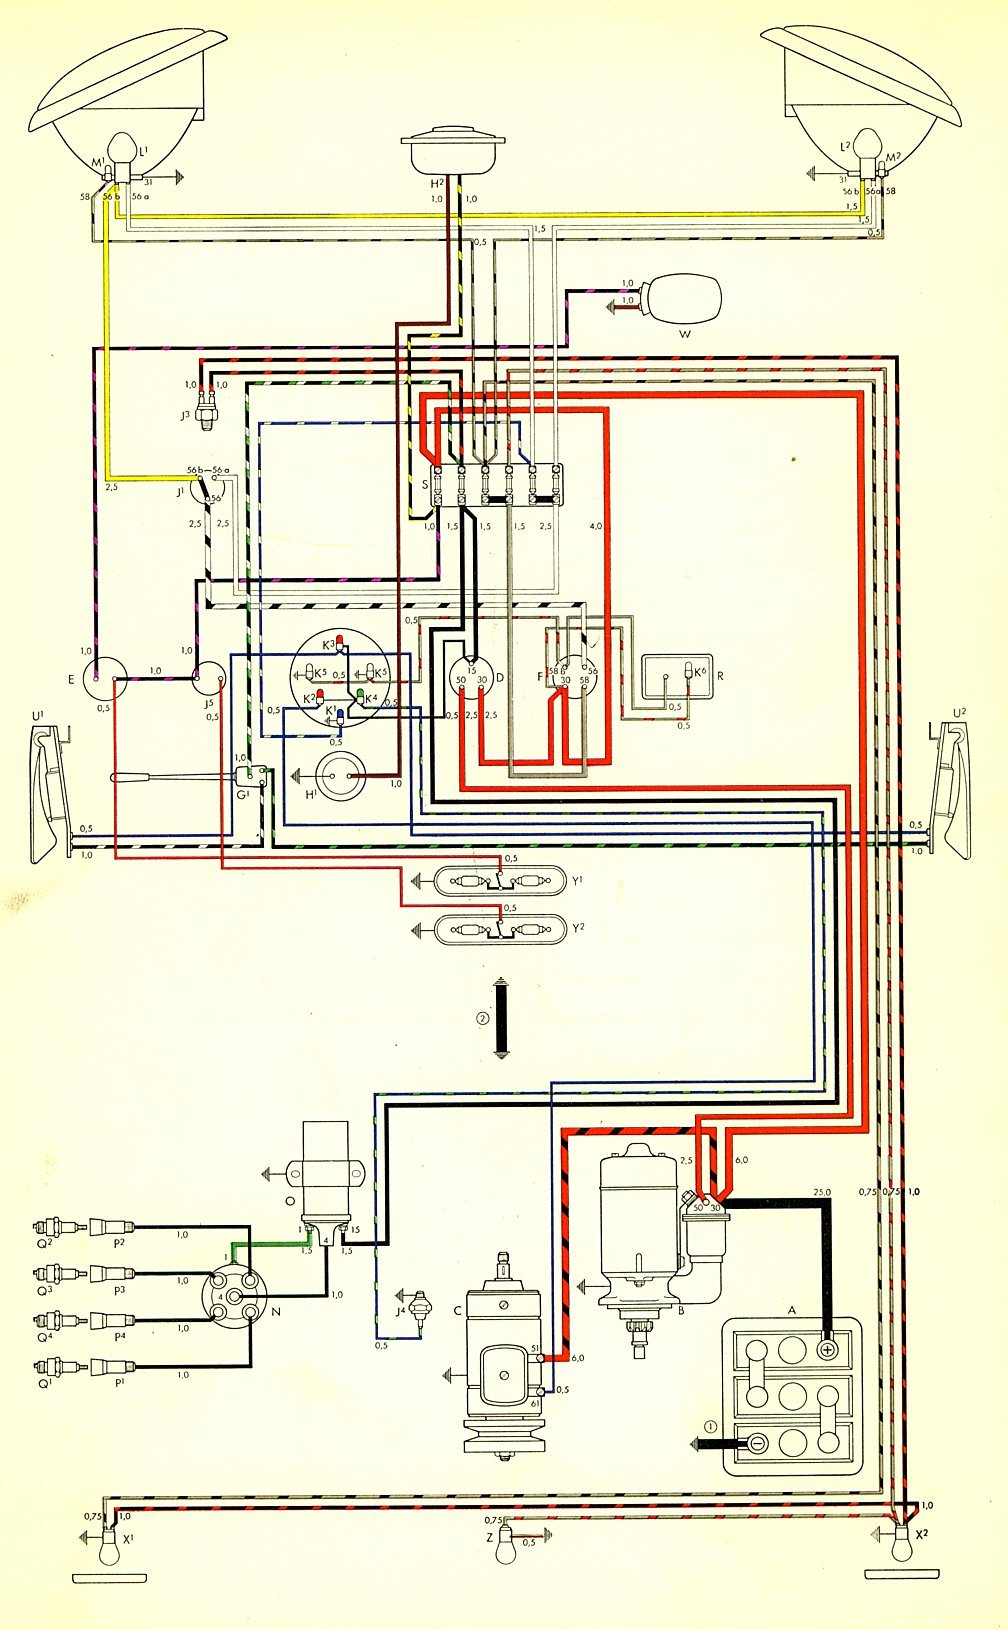 bus_59 bus wiring diagram vw wiring harness diagram \u2022 wiring diagrams j 1971 vw bus wiring diagram at honlapkeszites.co